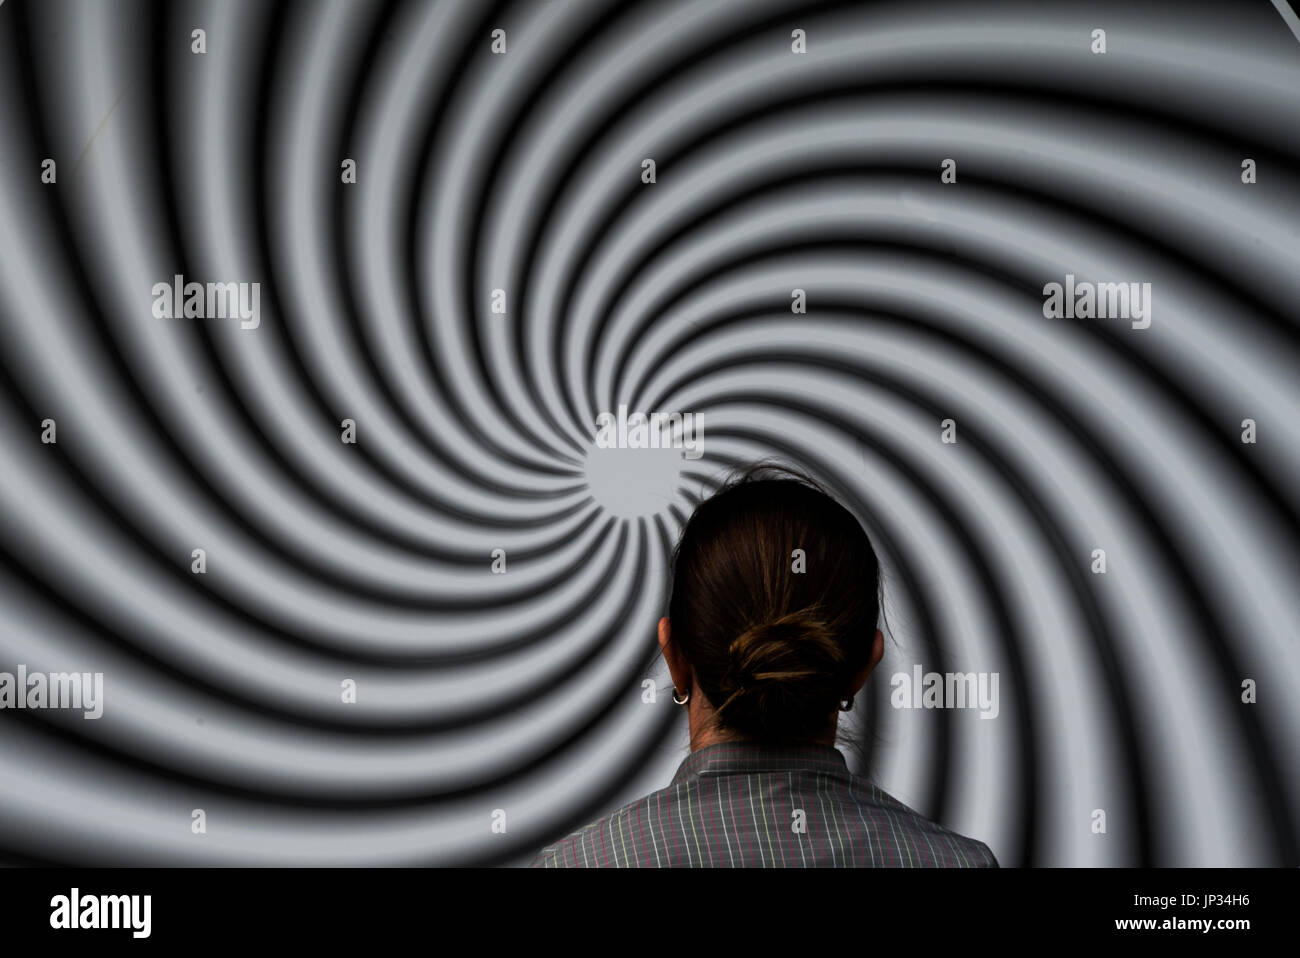 Optical Illusion in a Park of the senses - Stock Image